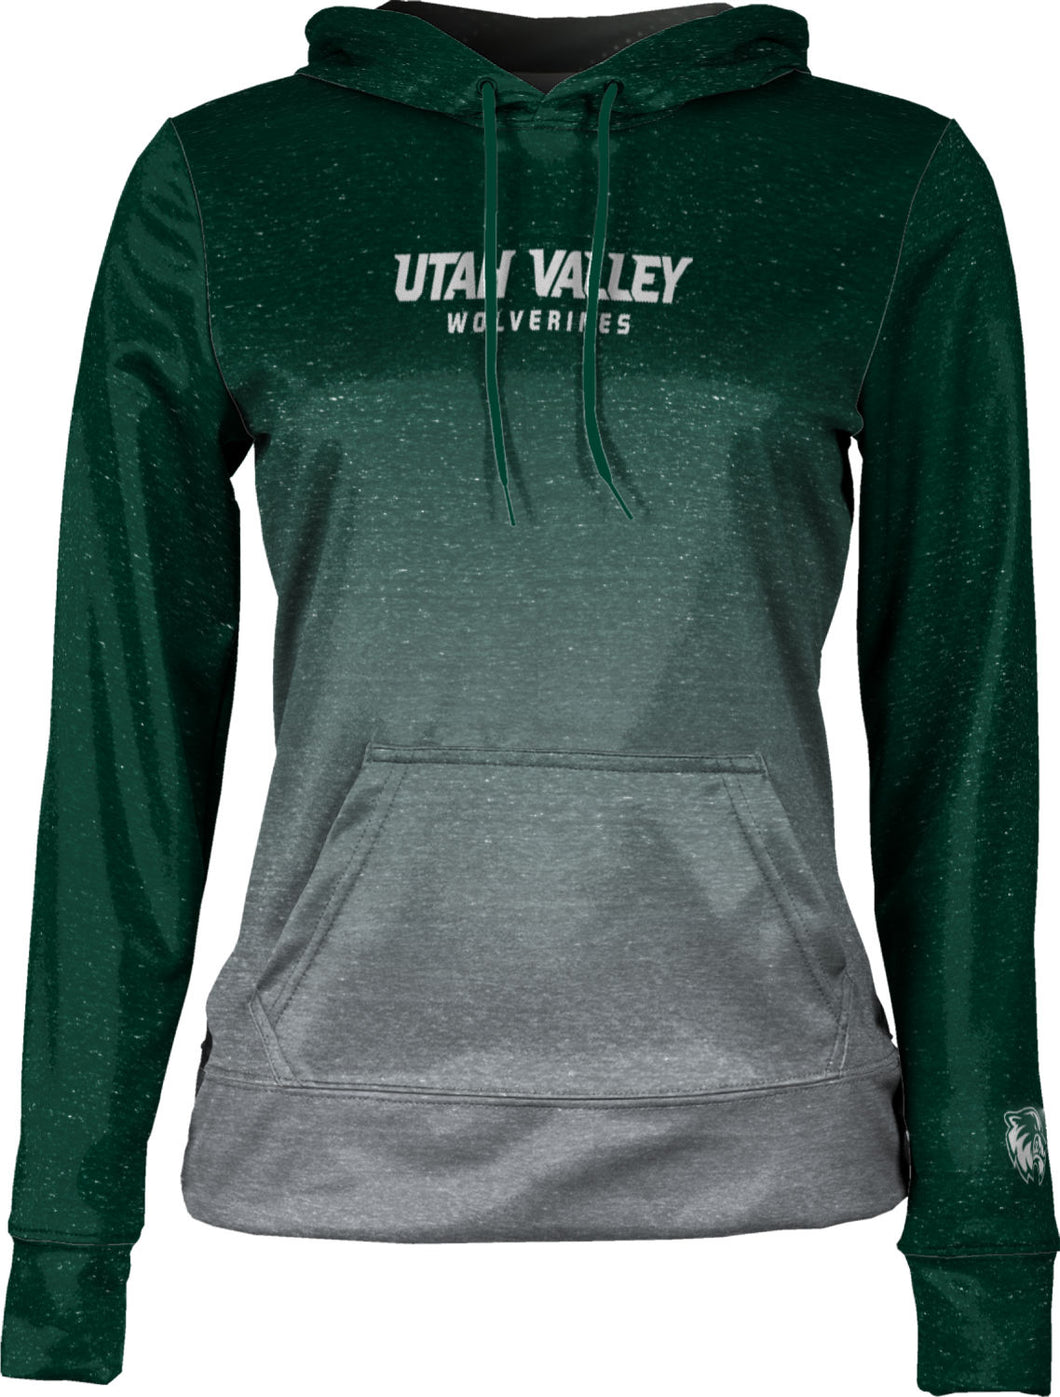 Utah Valley University: Women's Pullover Hoodie - Gradient